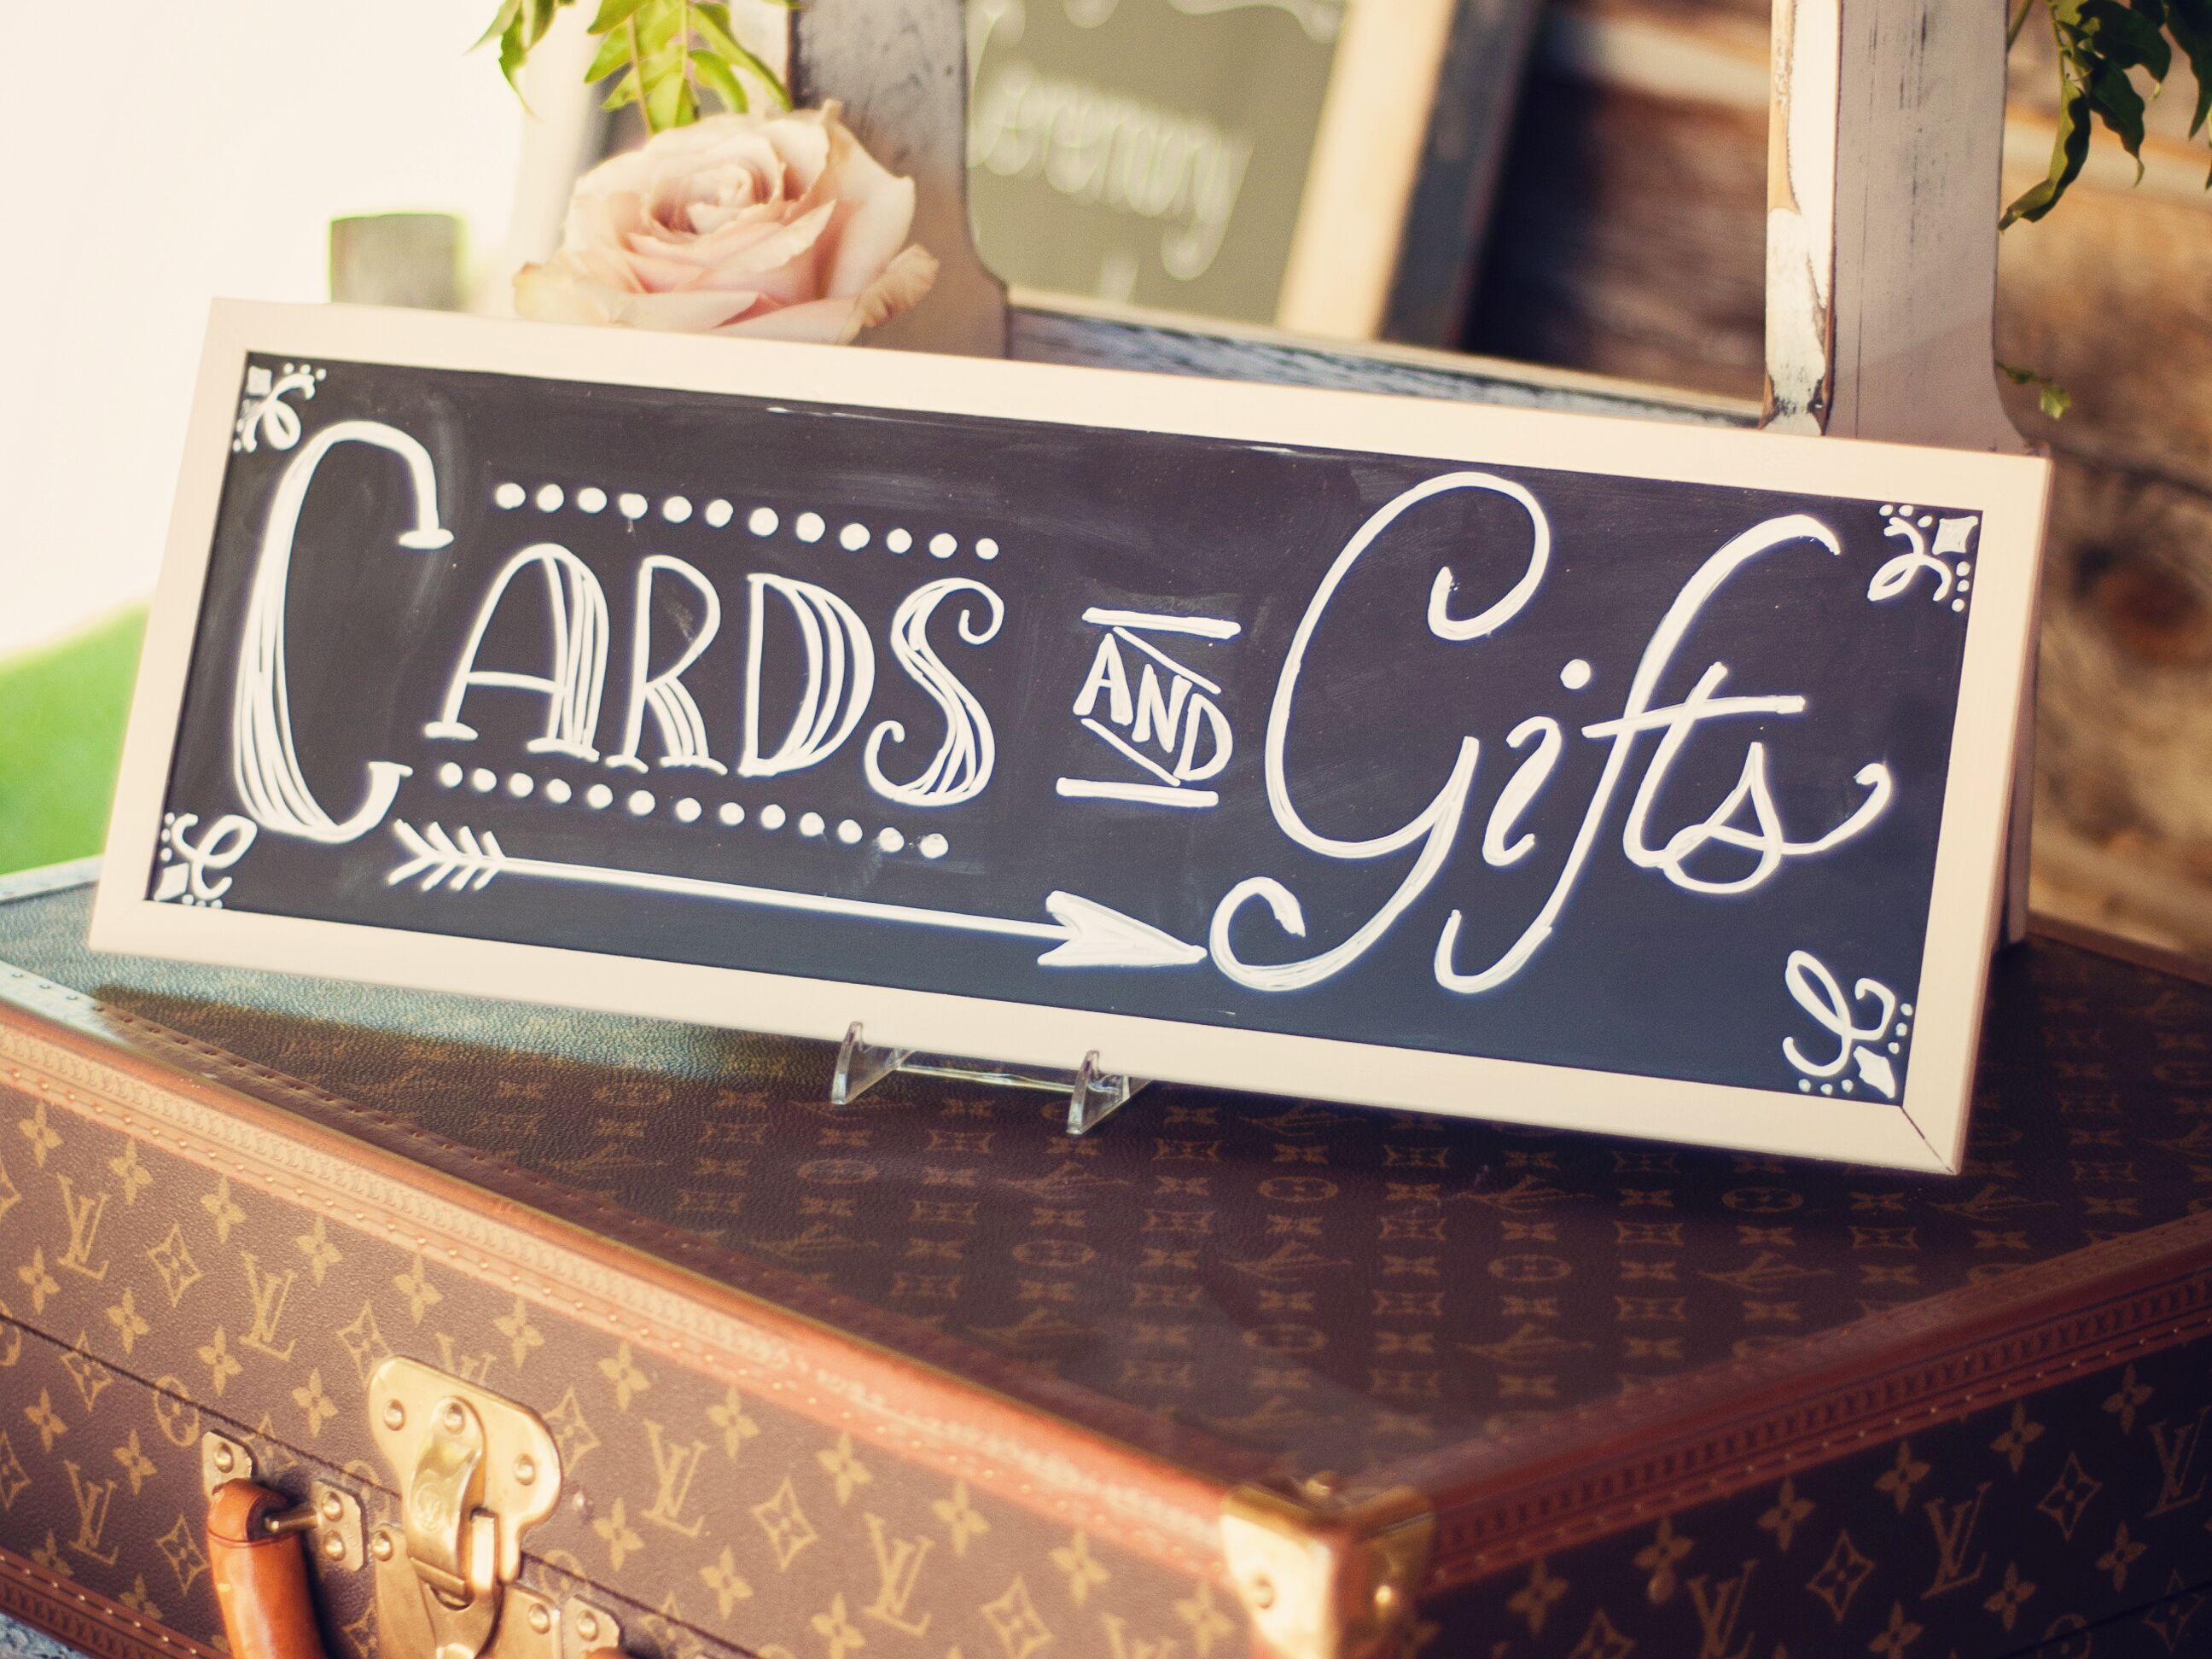 Wedding Gift Giving Money : Chalkboard cards and gifts sign at wedding reception